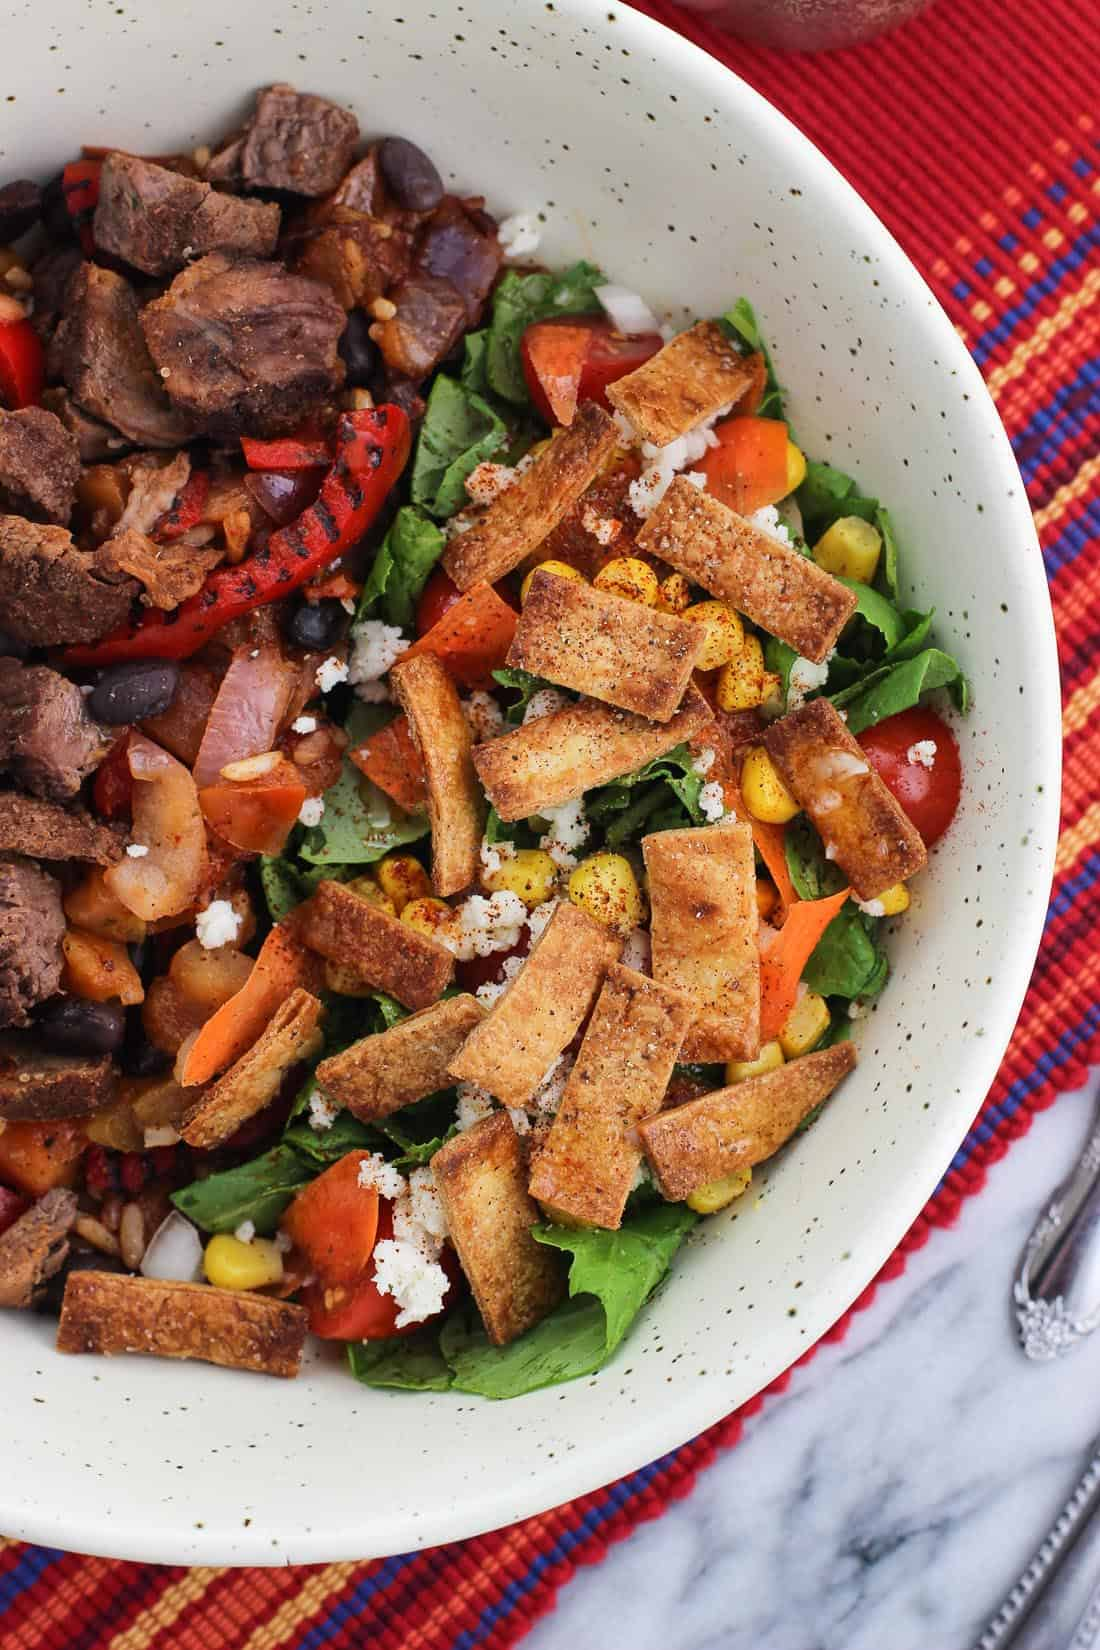 A side salad topped with tortilla strips in a bowl with steak and peppers